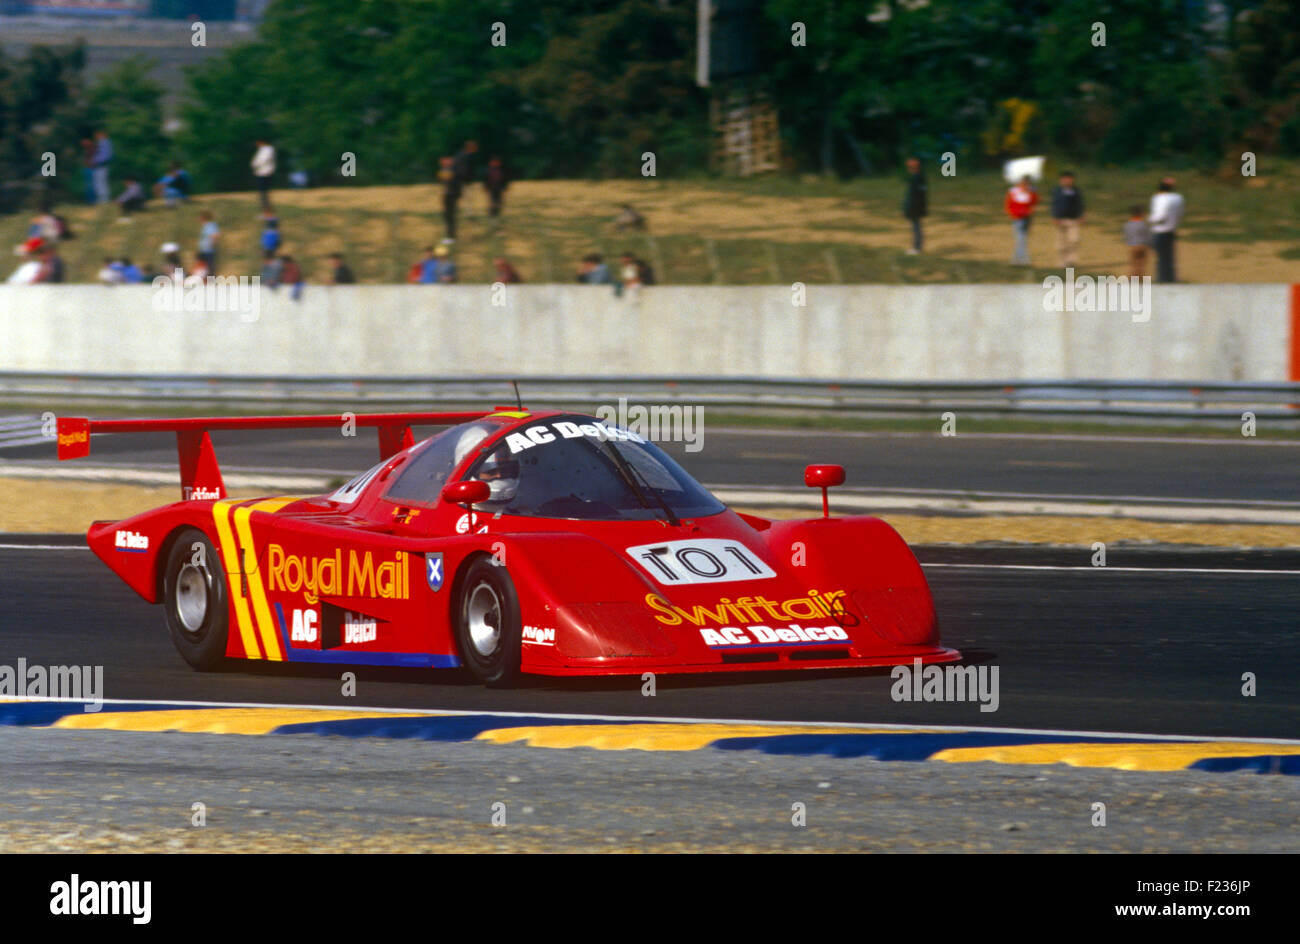 101 Mike Wilds Andy Petery Les Delano Ecosse C286 24 Hrs Le Mans 14 June 1987 - Stock Image